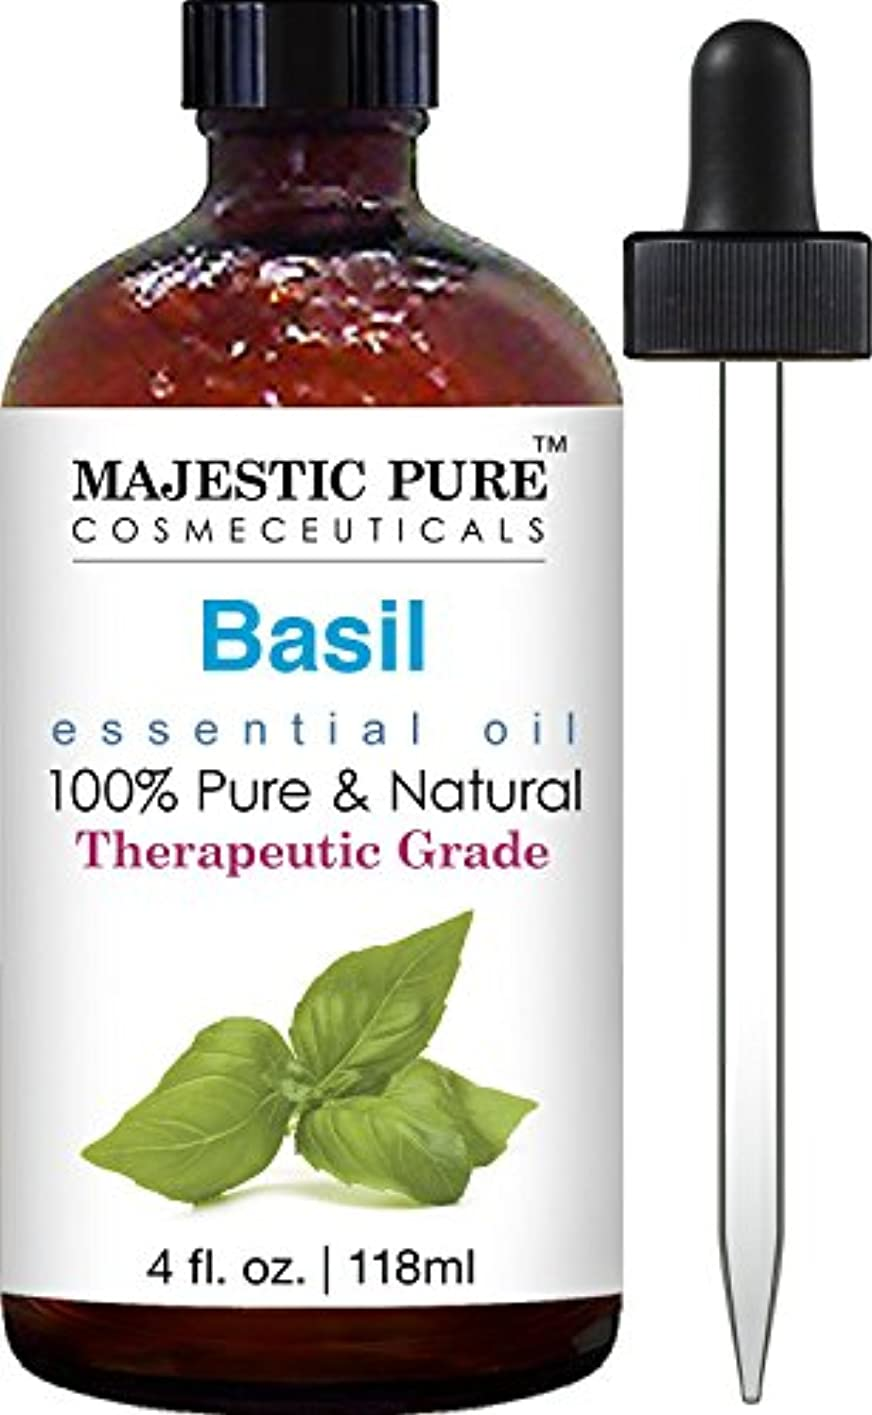 スプレーランドマーク廃止Basil Oil, Therapeutic Grade, Pure and Natural Basil Essential Oil, 4 fl. oz バジルオイル